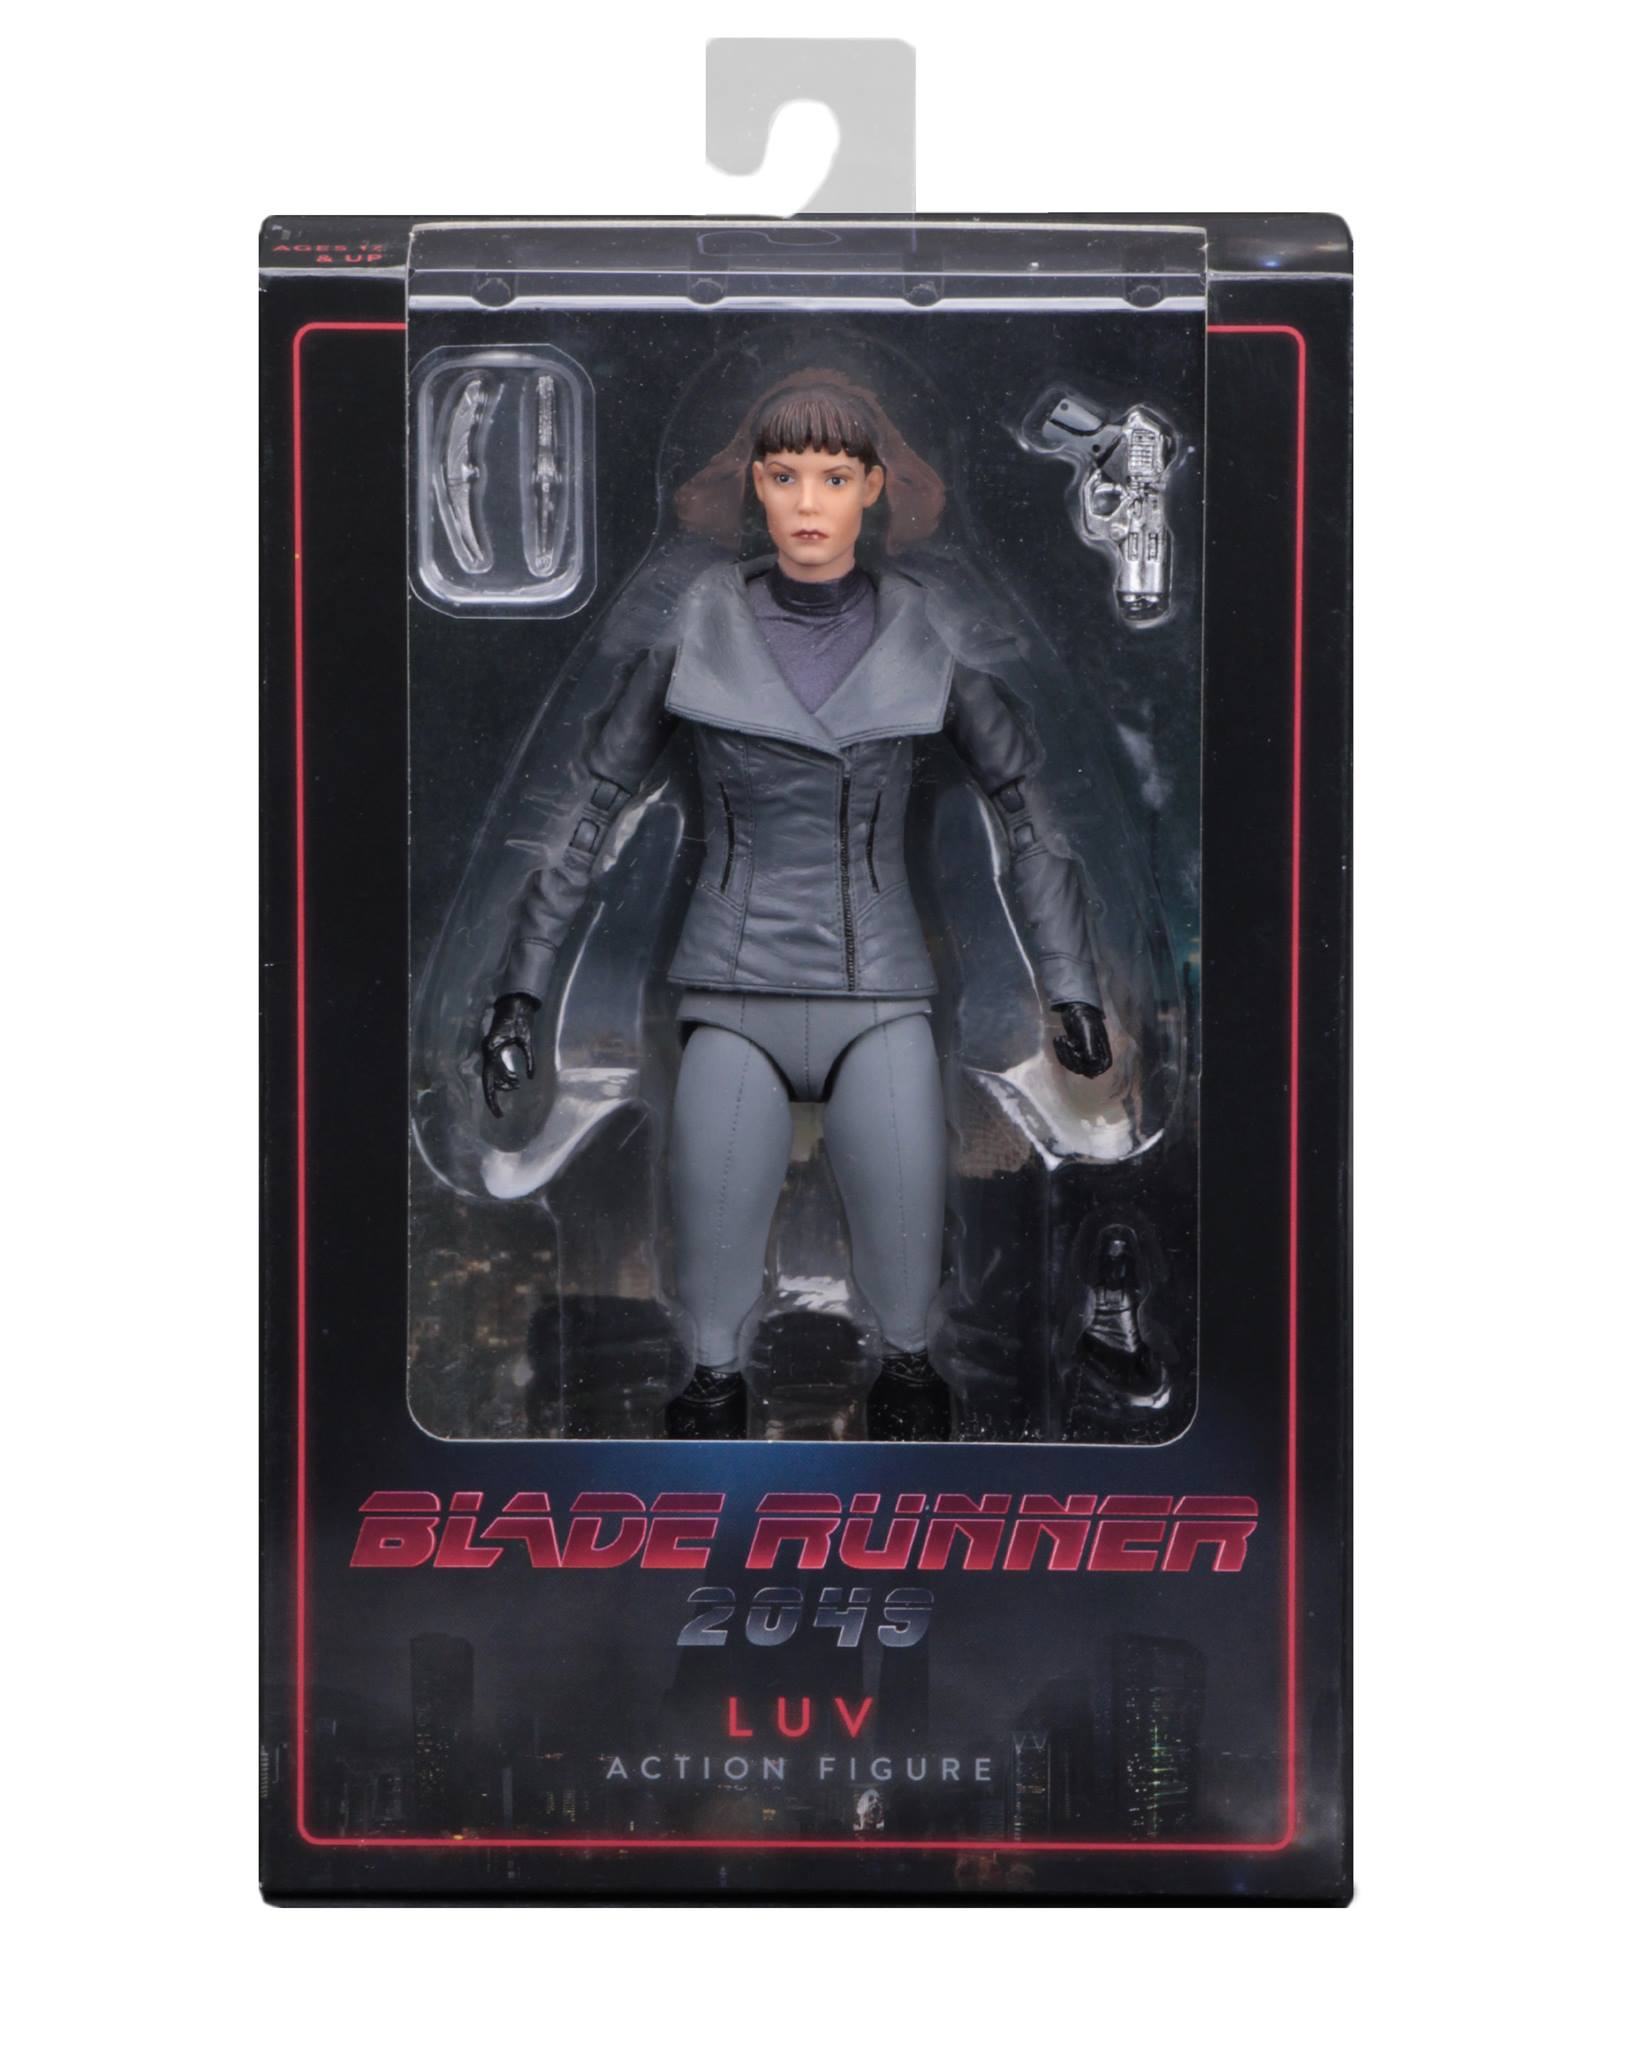 """WALLACE /& LUV Blade Runner 2049 SET of 2 NECA Series 2 2018 7/"""" Inch Figures"""